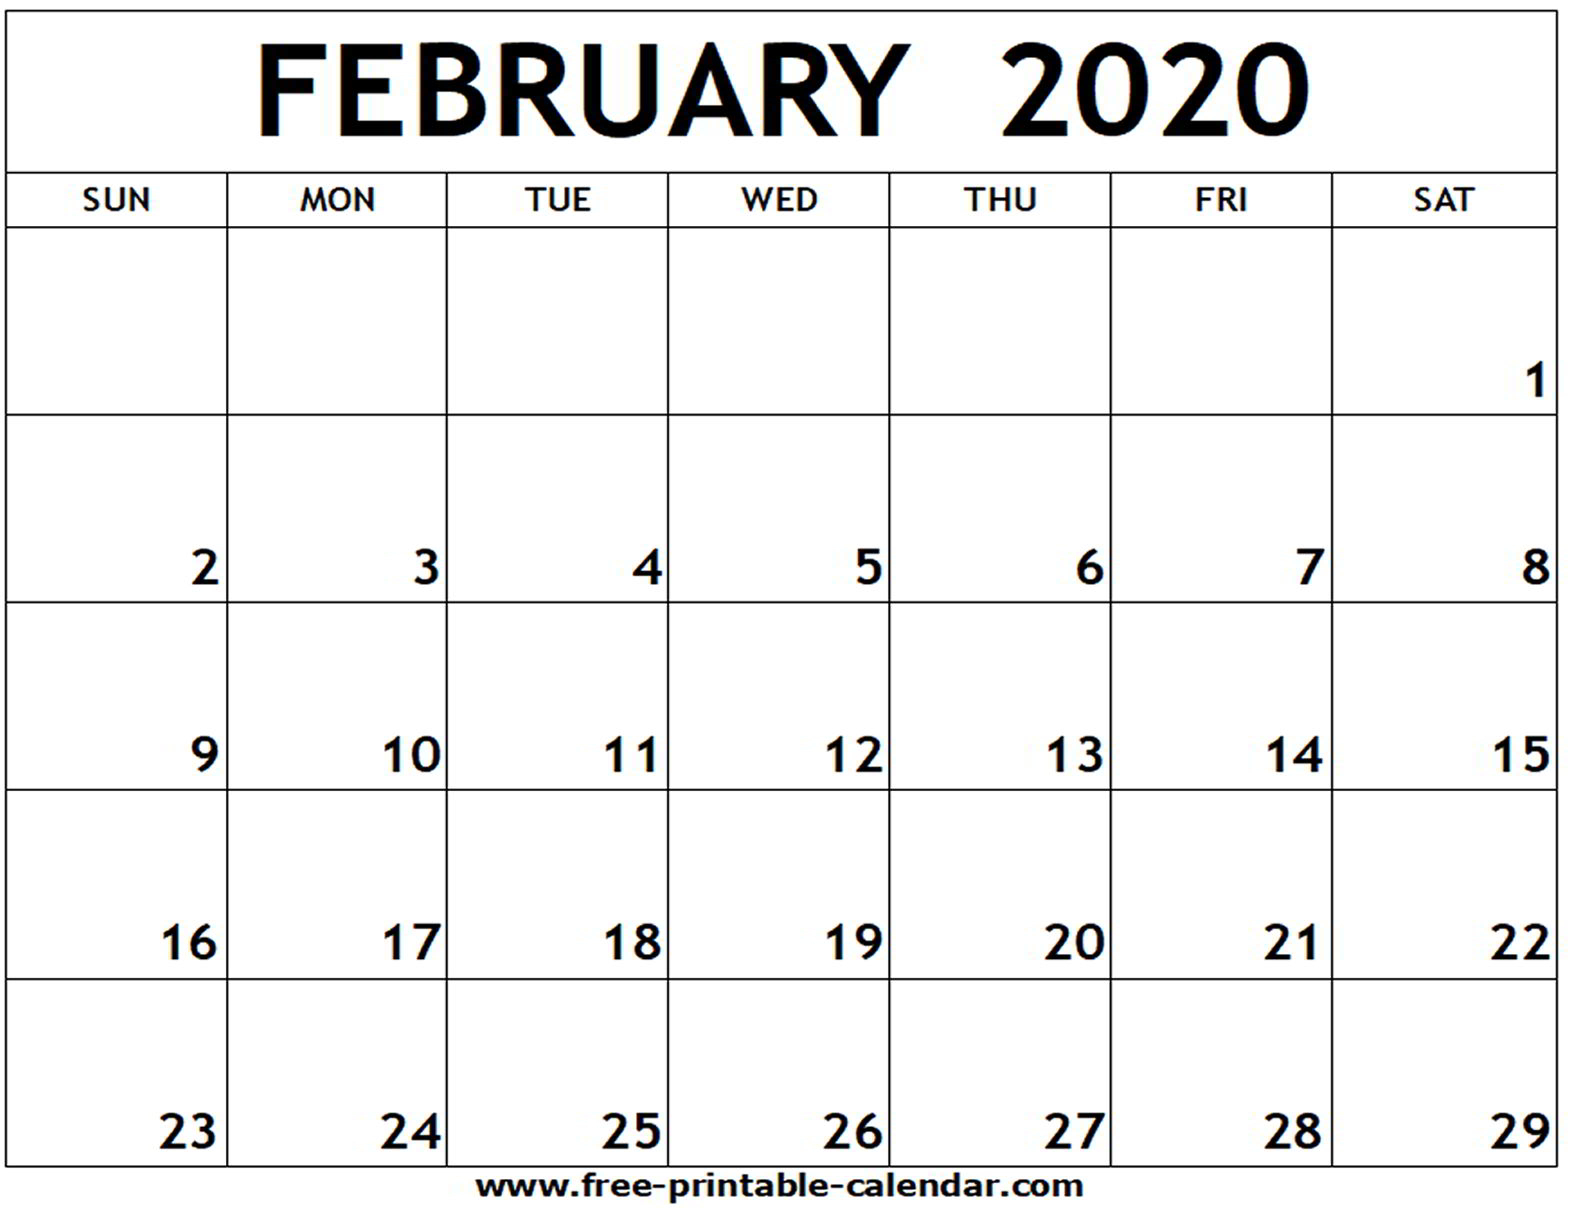 Monthly Calendar February 2020 Printable  Bolan intended for Free Printable Due Date Calendar